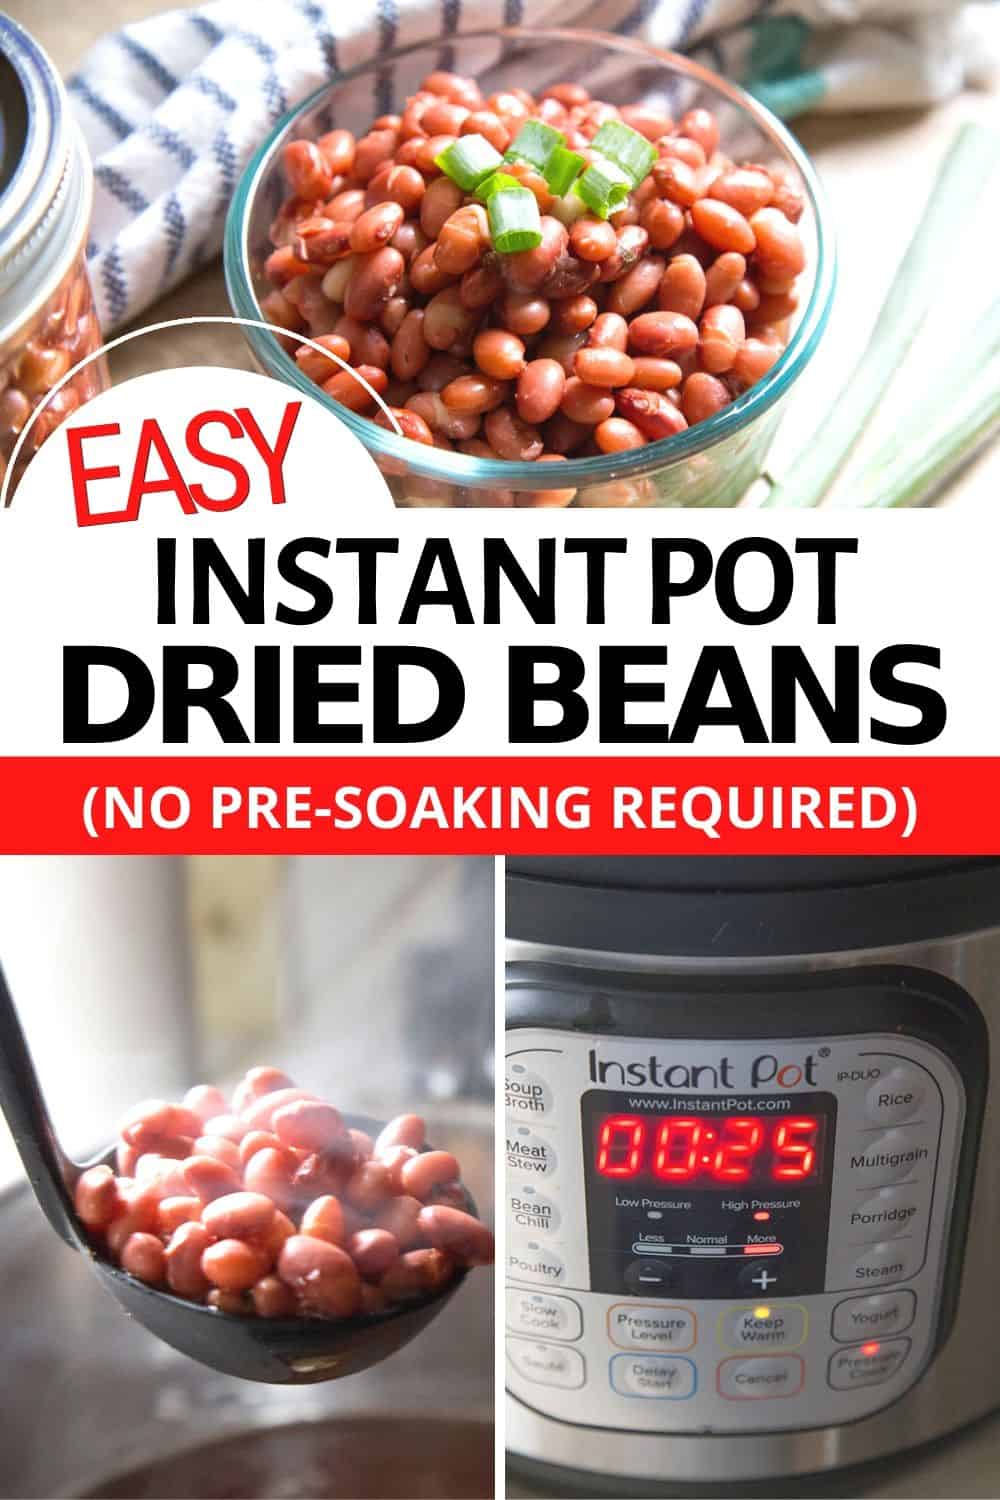 Learn how to make Instant Pot dried beans with no pre-soaking required. Easy and simple to make you will be enjoying delicious beans in no time! via @mystayathome